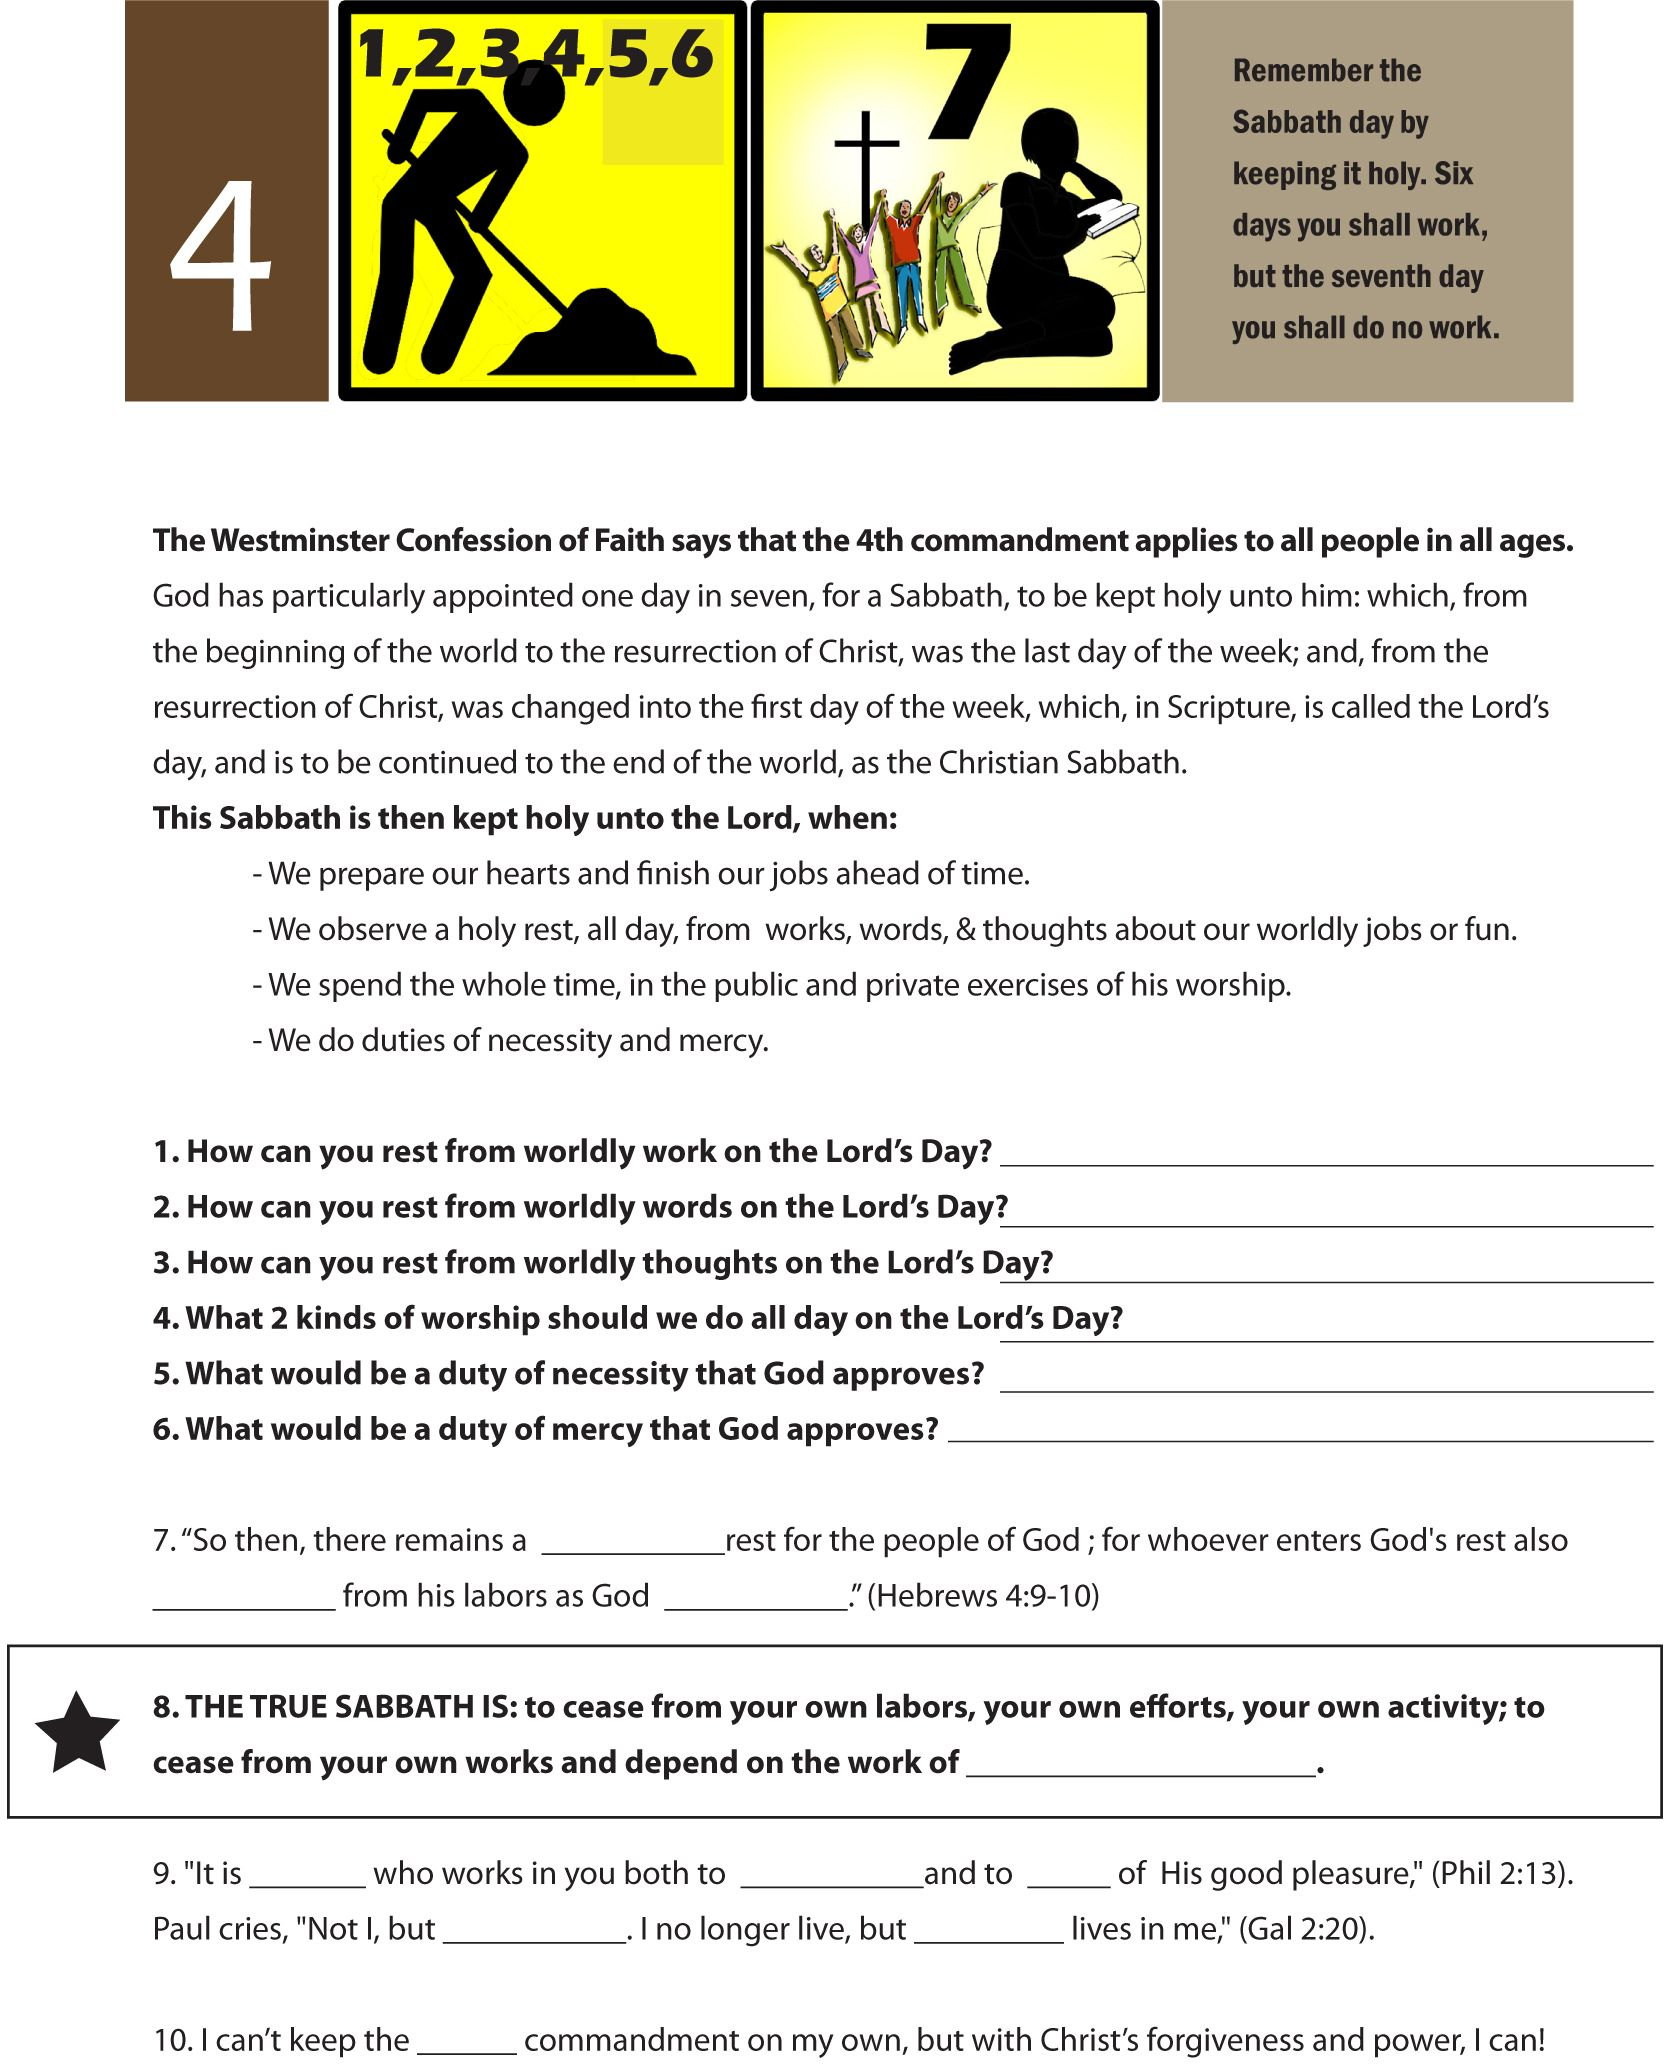 Worksheet To Teach The Fourth Of The 10 Commandments Work